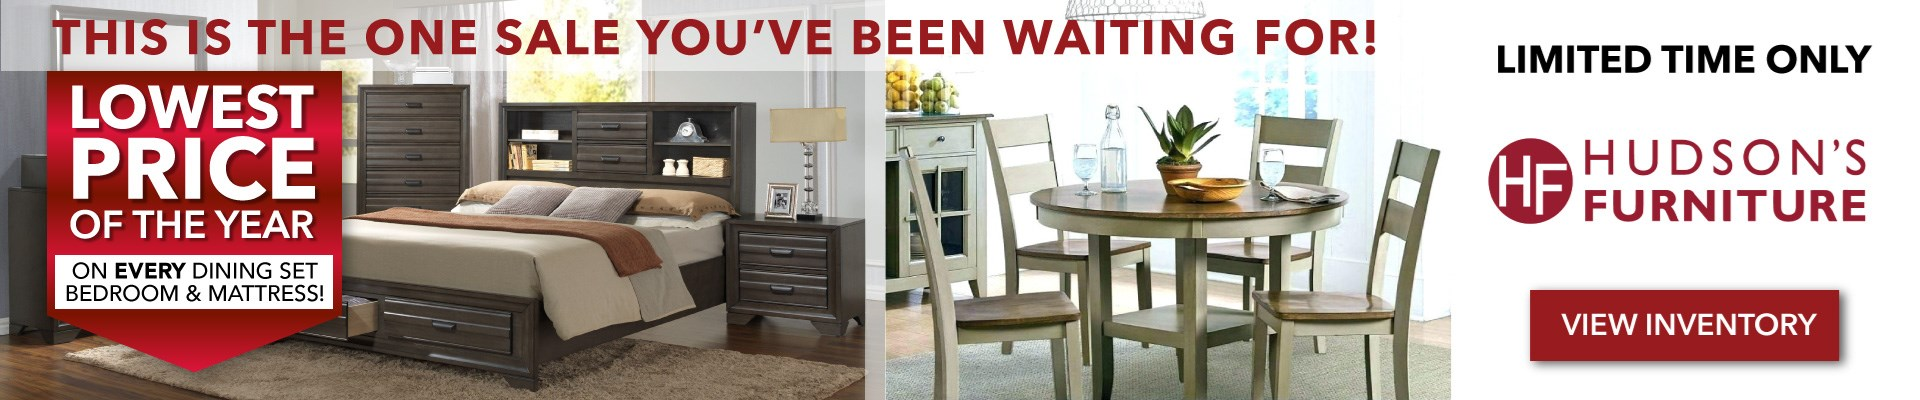 Lowest prices of the year for a limited time at Hudson's Furniture